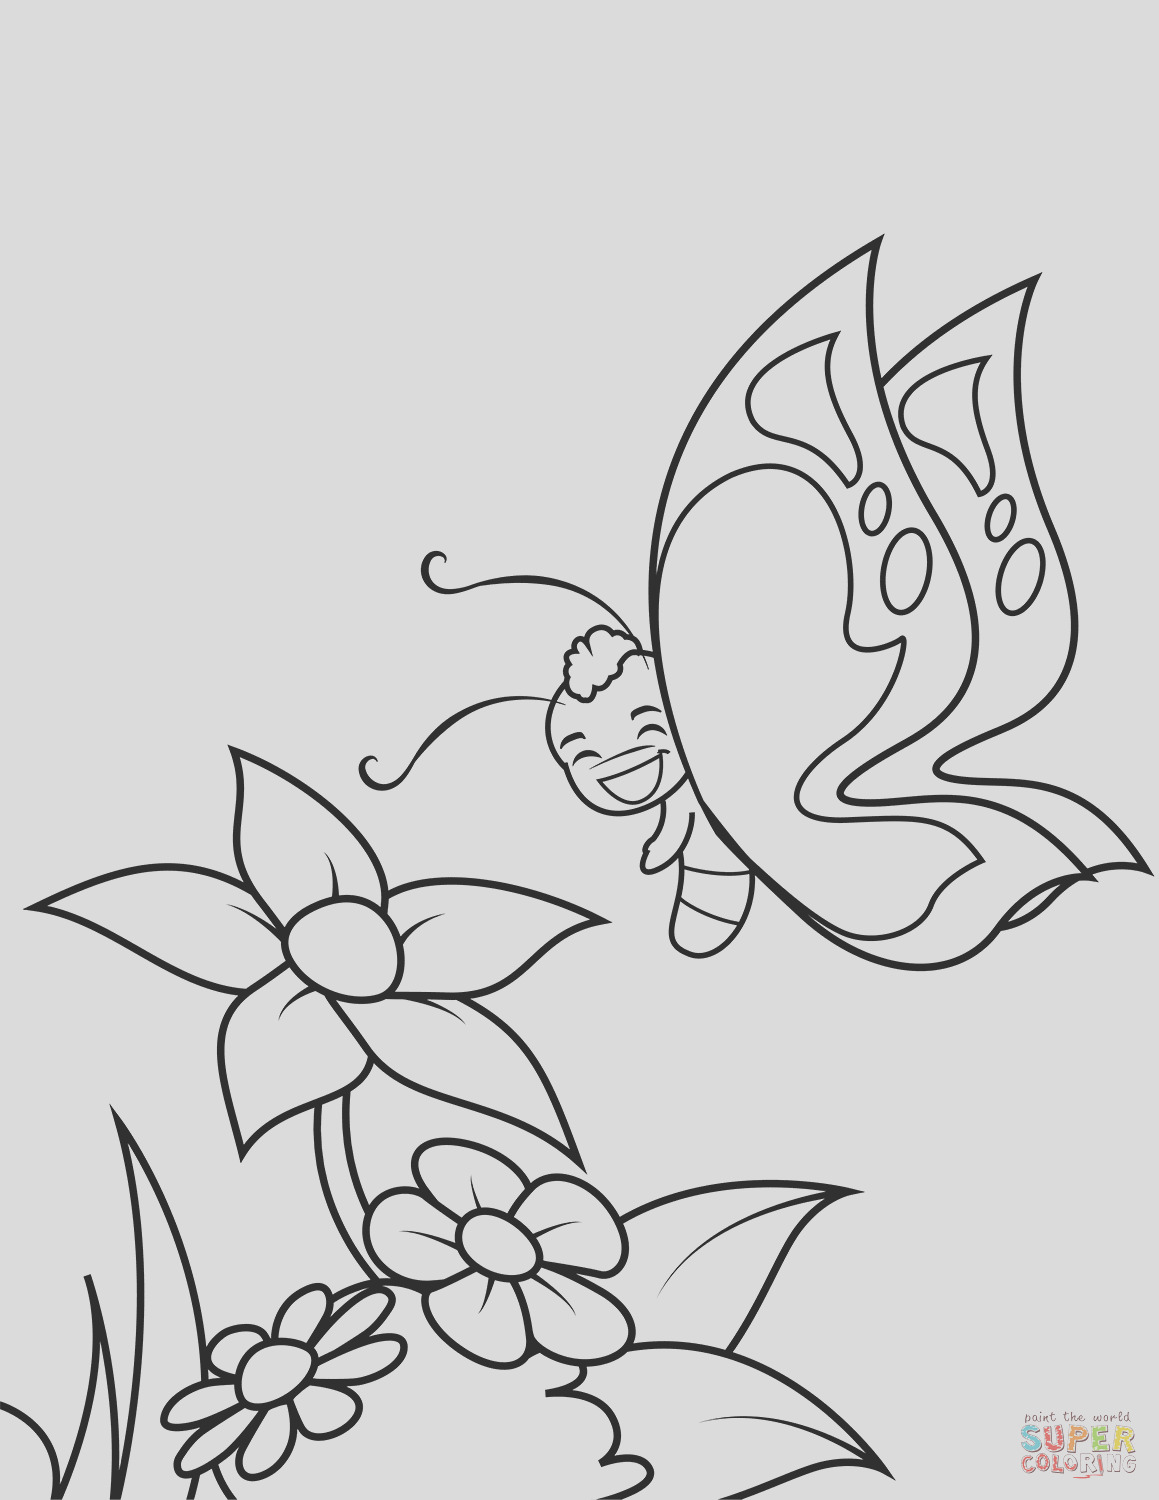 cute butterfly boy flies over flowers tag=